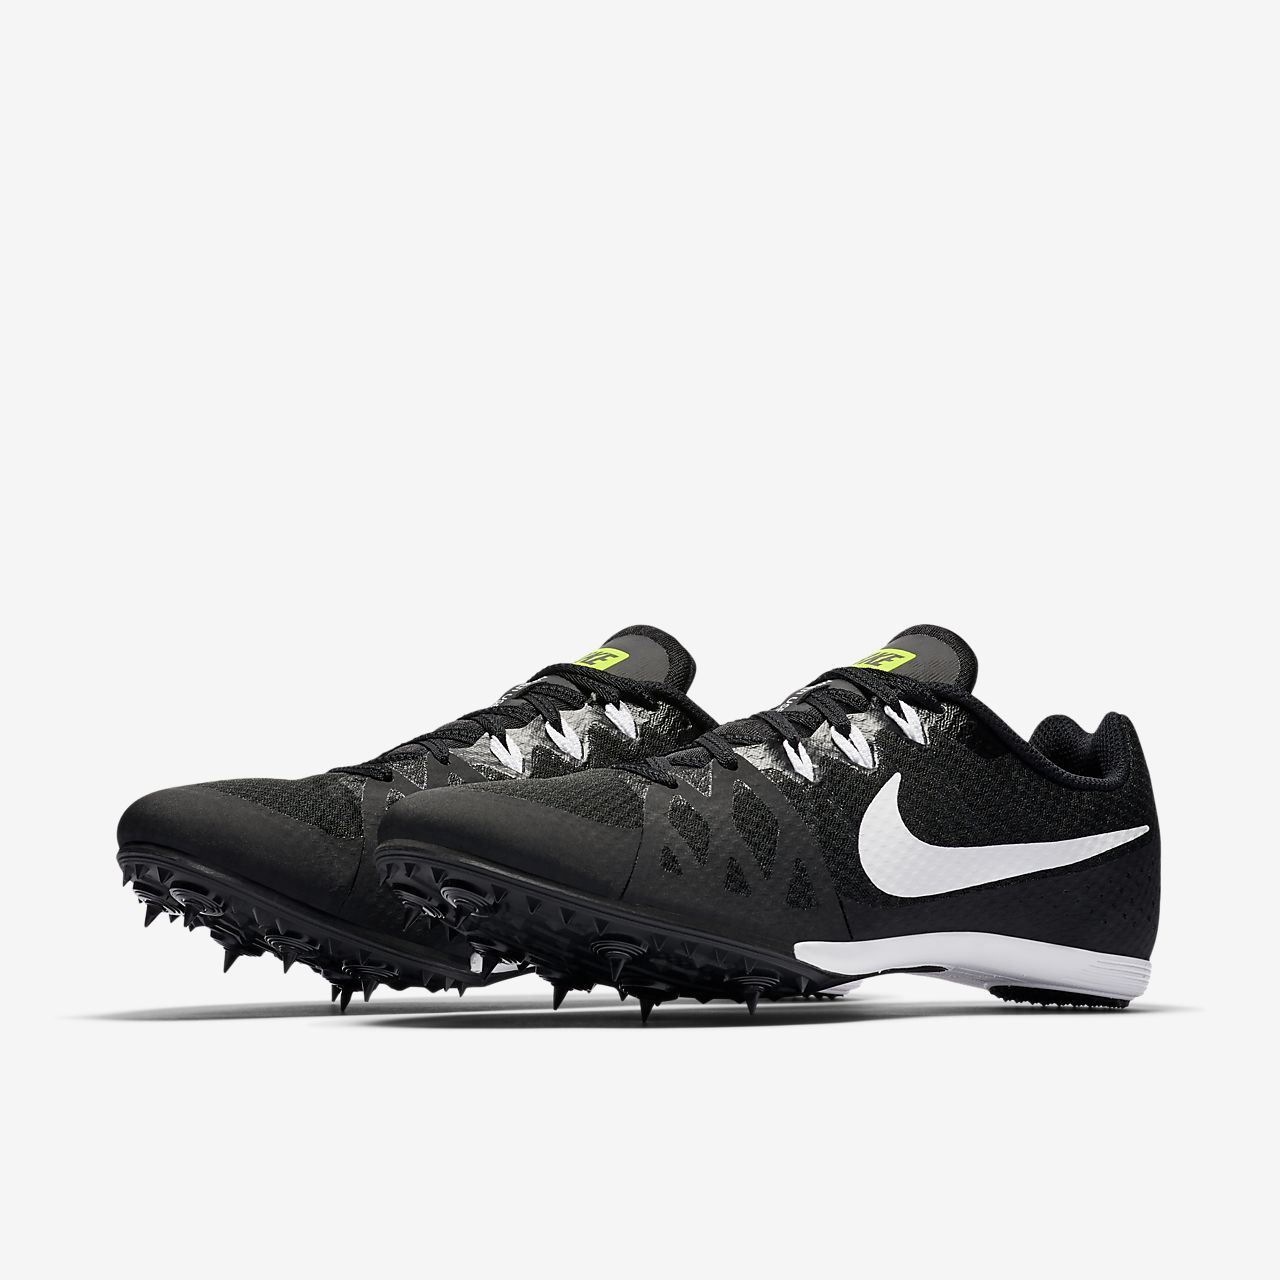 sports shoes 2aa5f 8cc57 ... Nike Zoom Rival M 8 Unisex Distance Spike